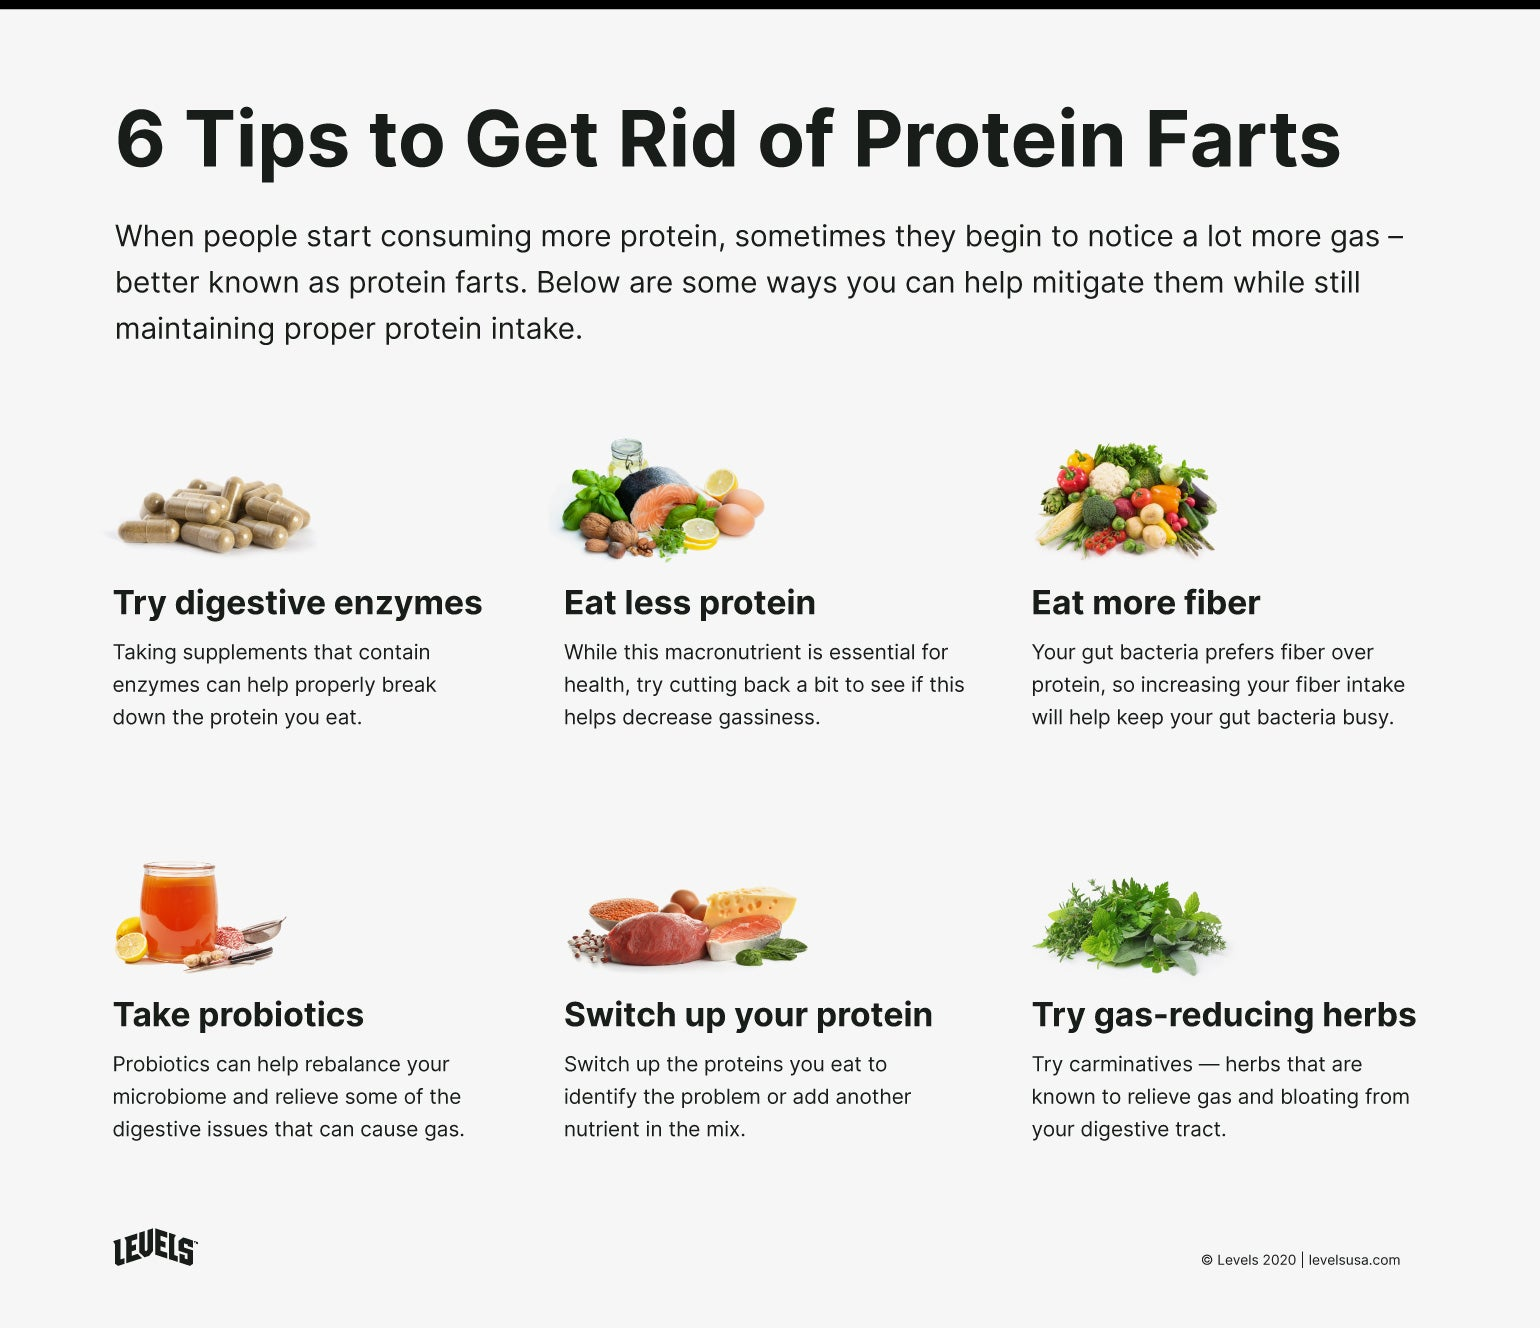 How to Get Rid of Protein Farts - Infographic